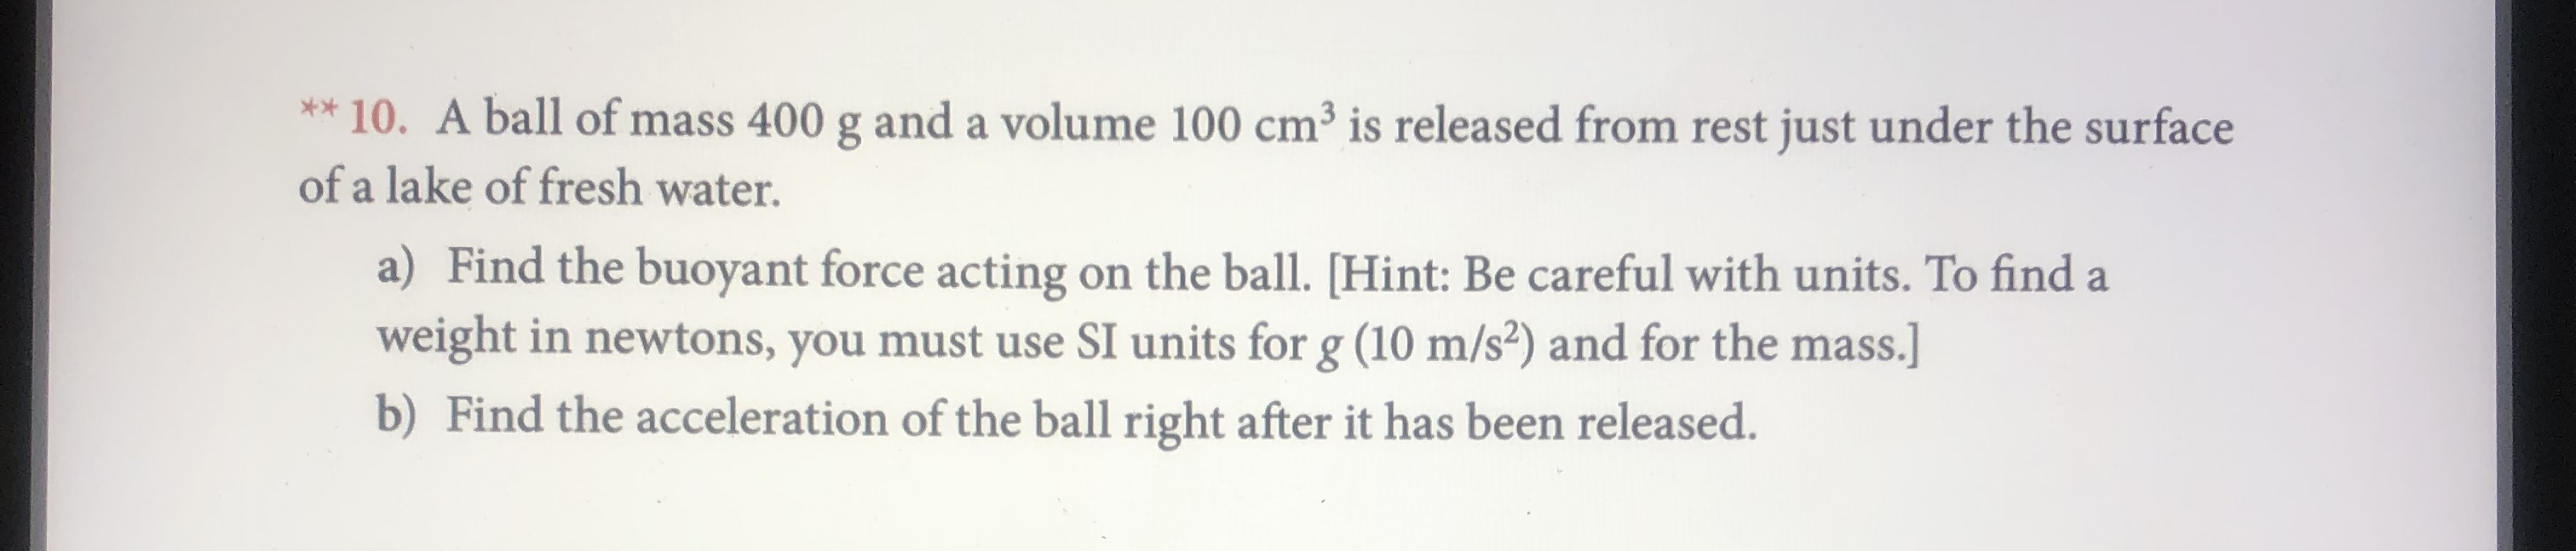 *10. A ball of mass 400 g anda volume 100 cm3 is released from rest just under the surface of a lake of fresh water. a) Find the buoyant force acting on the ball. [Hint: Be careful with units. To find a weight in newtons, you must use SI units for g (10 m/s2) and for the mass.] b) Find the acceleration of the ball right after it has been released.